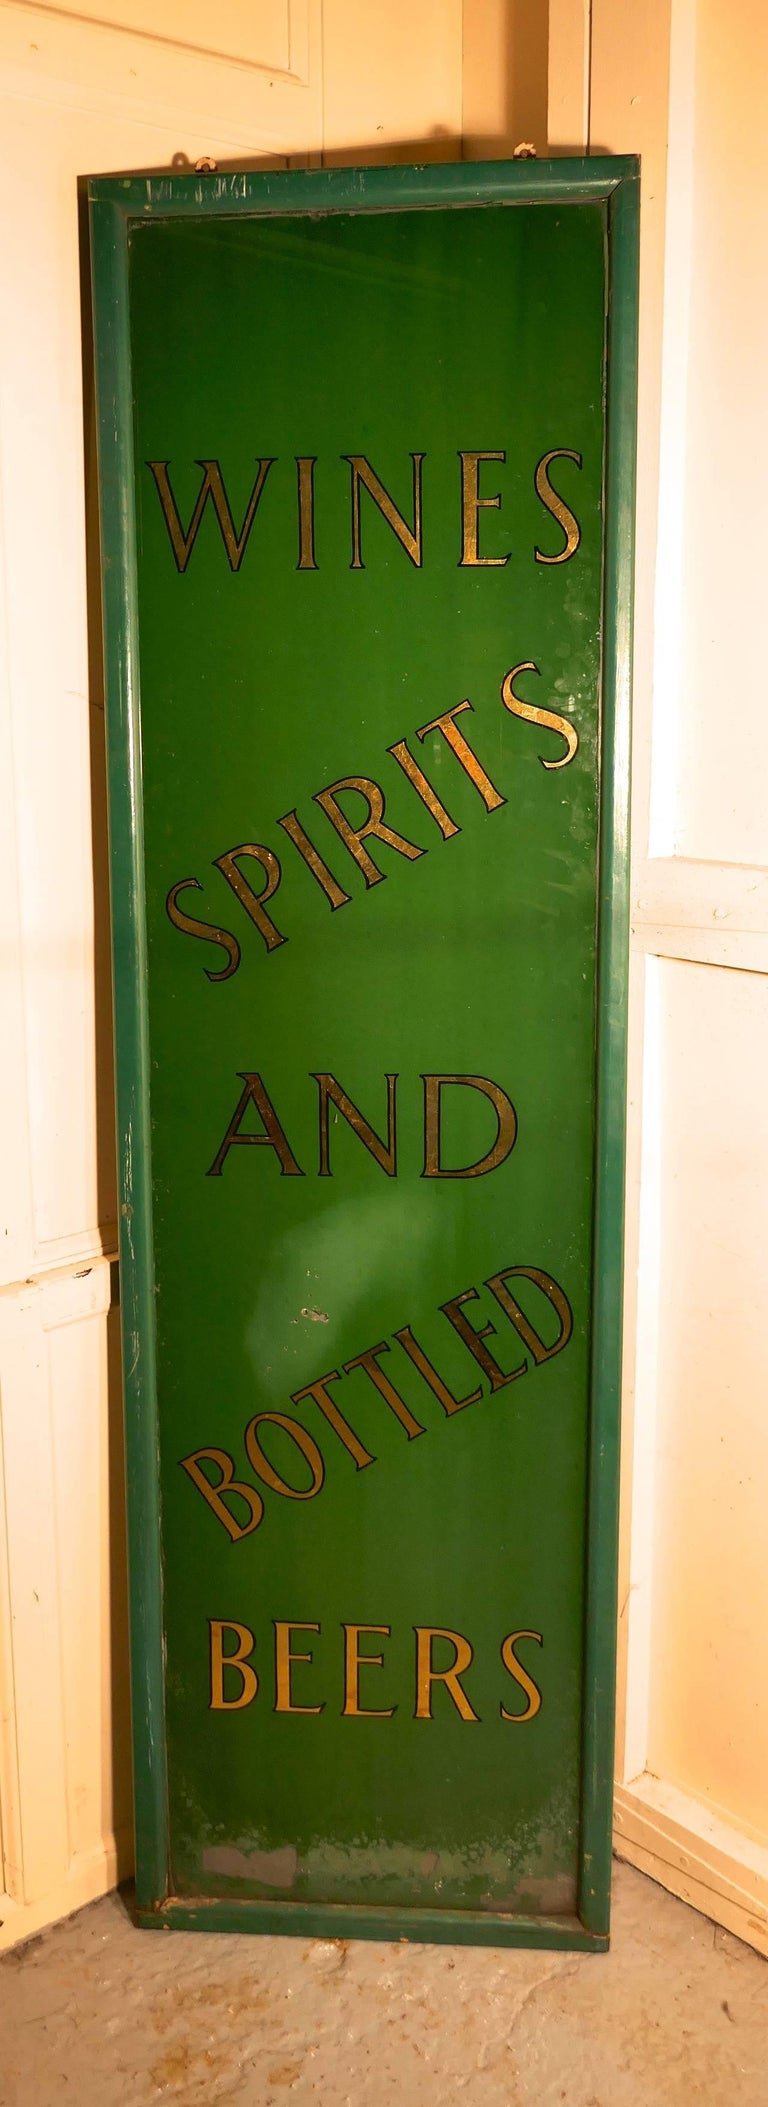 19th Century Pub Mirror Advertising Sign For Sale 4